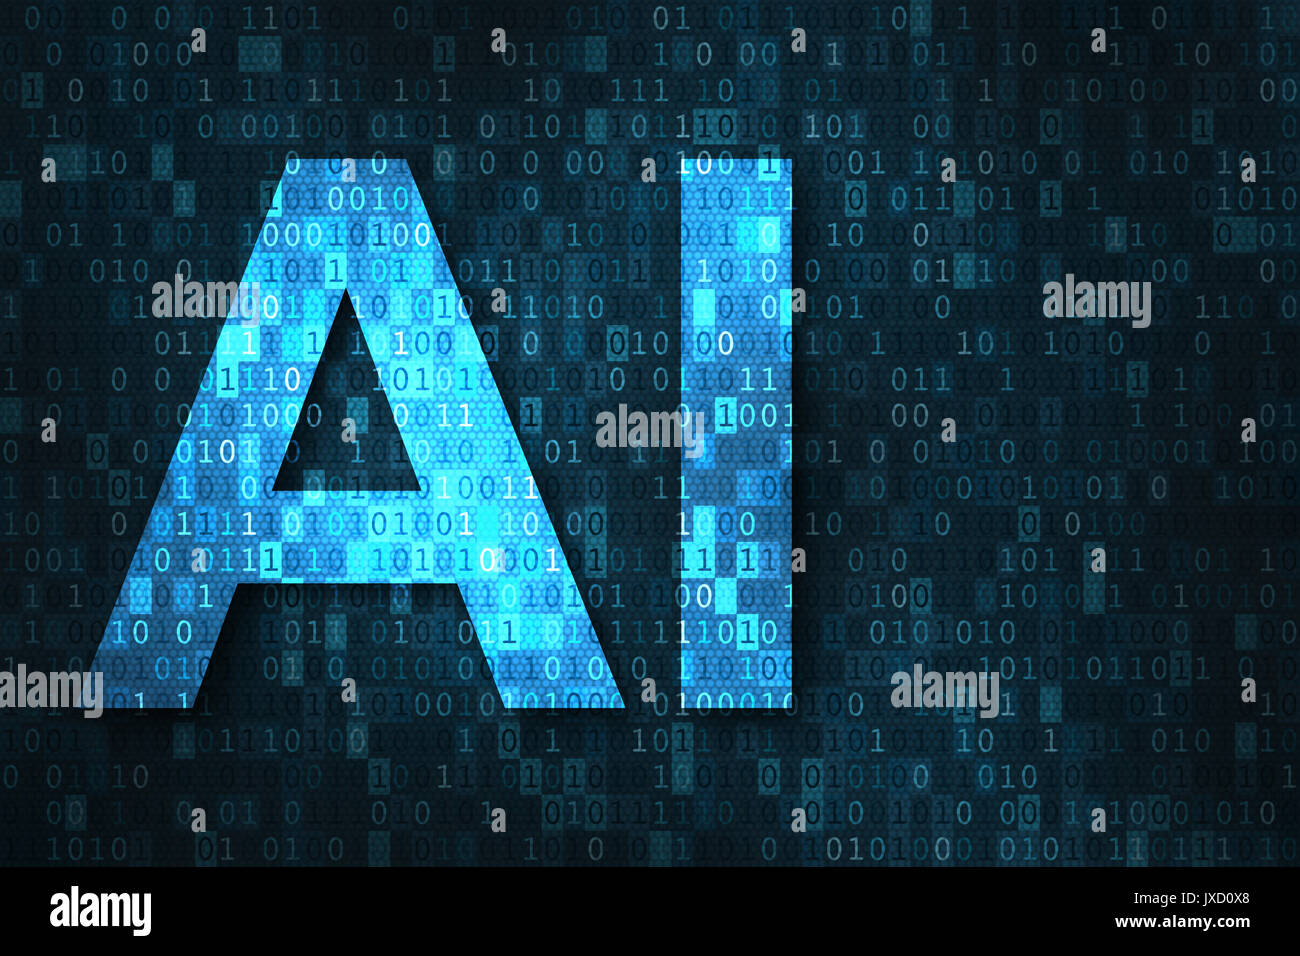 Artificial intelligence illustration with blue text AI over binary code matrix background. Abstract concept of cyber technology and automation - Stock Image